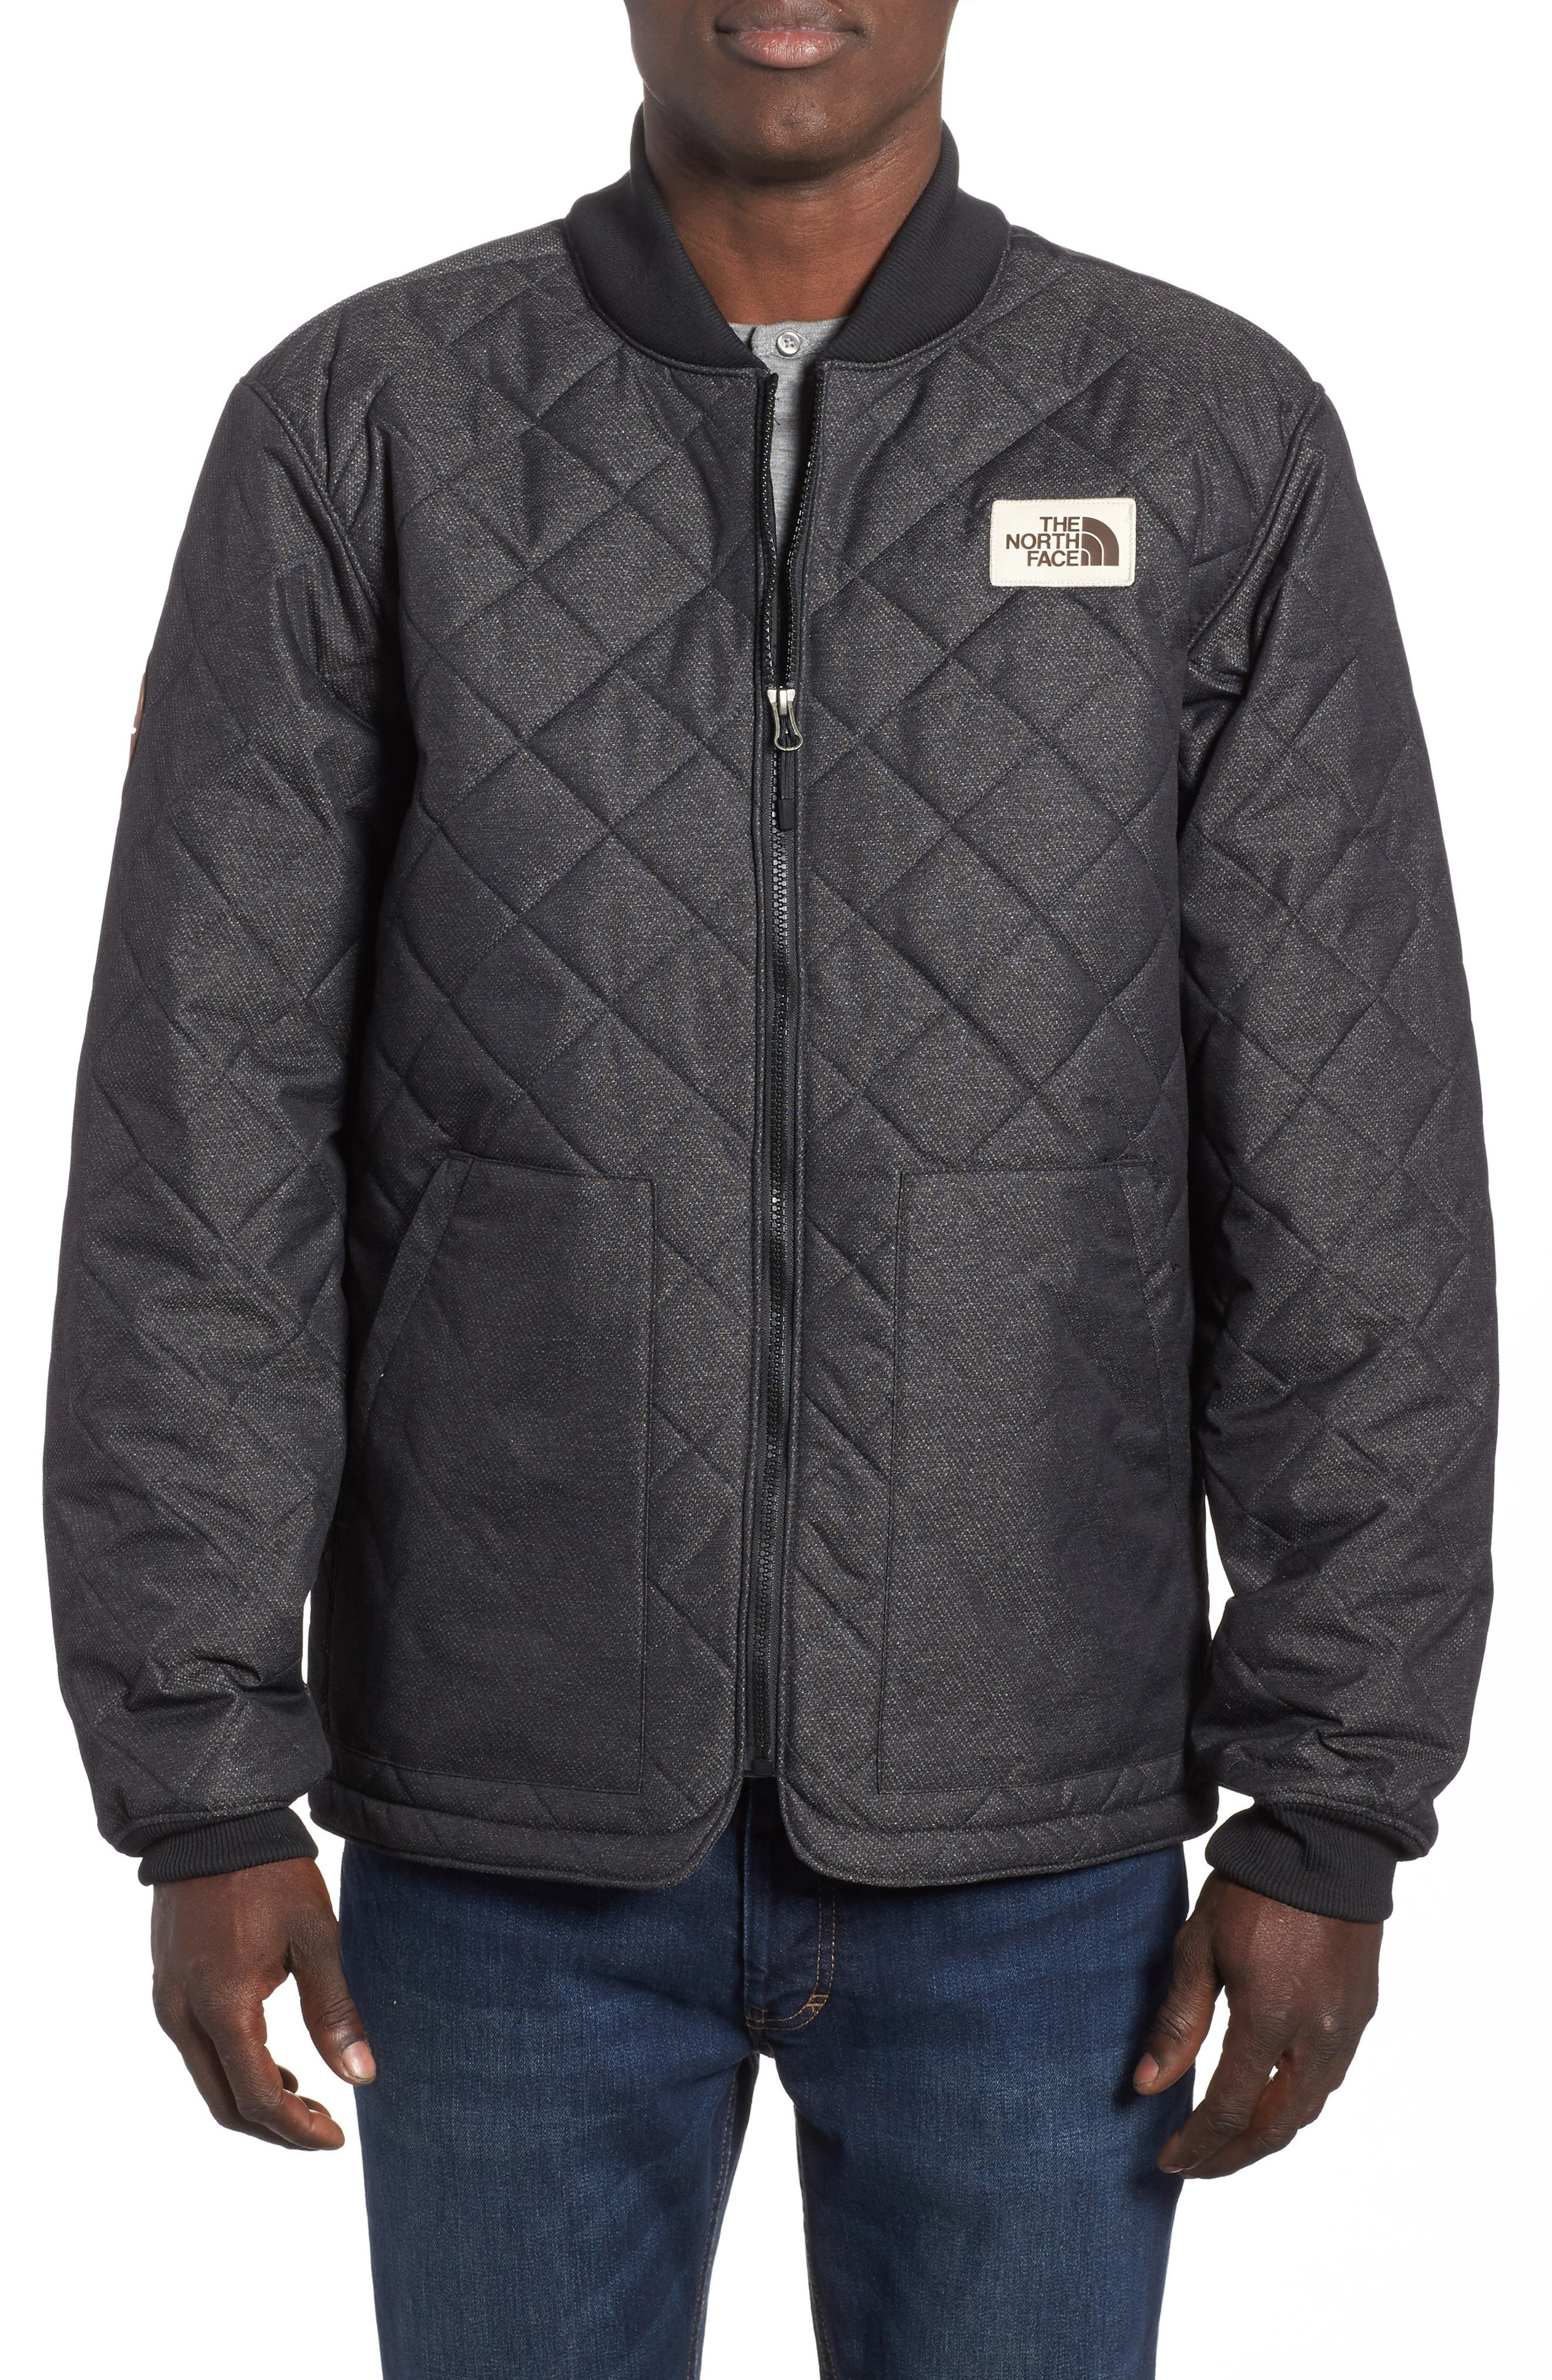 Main Image - The North Face Cuchillo Insulated Jacket